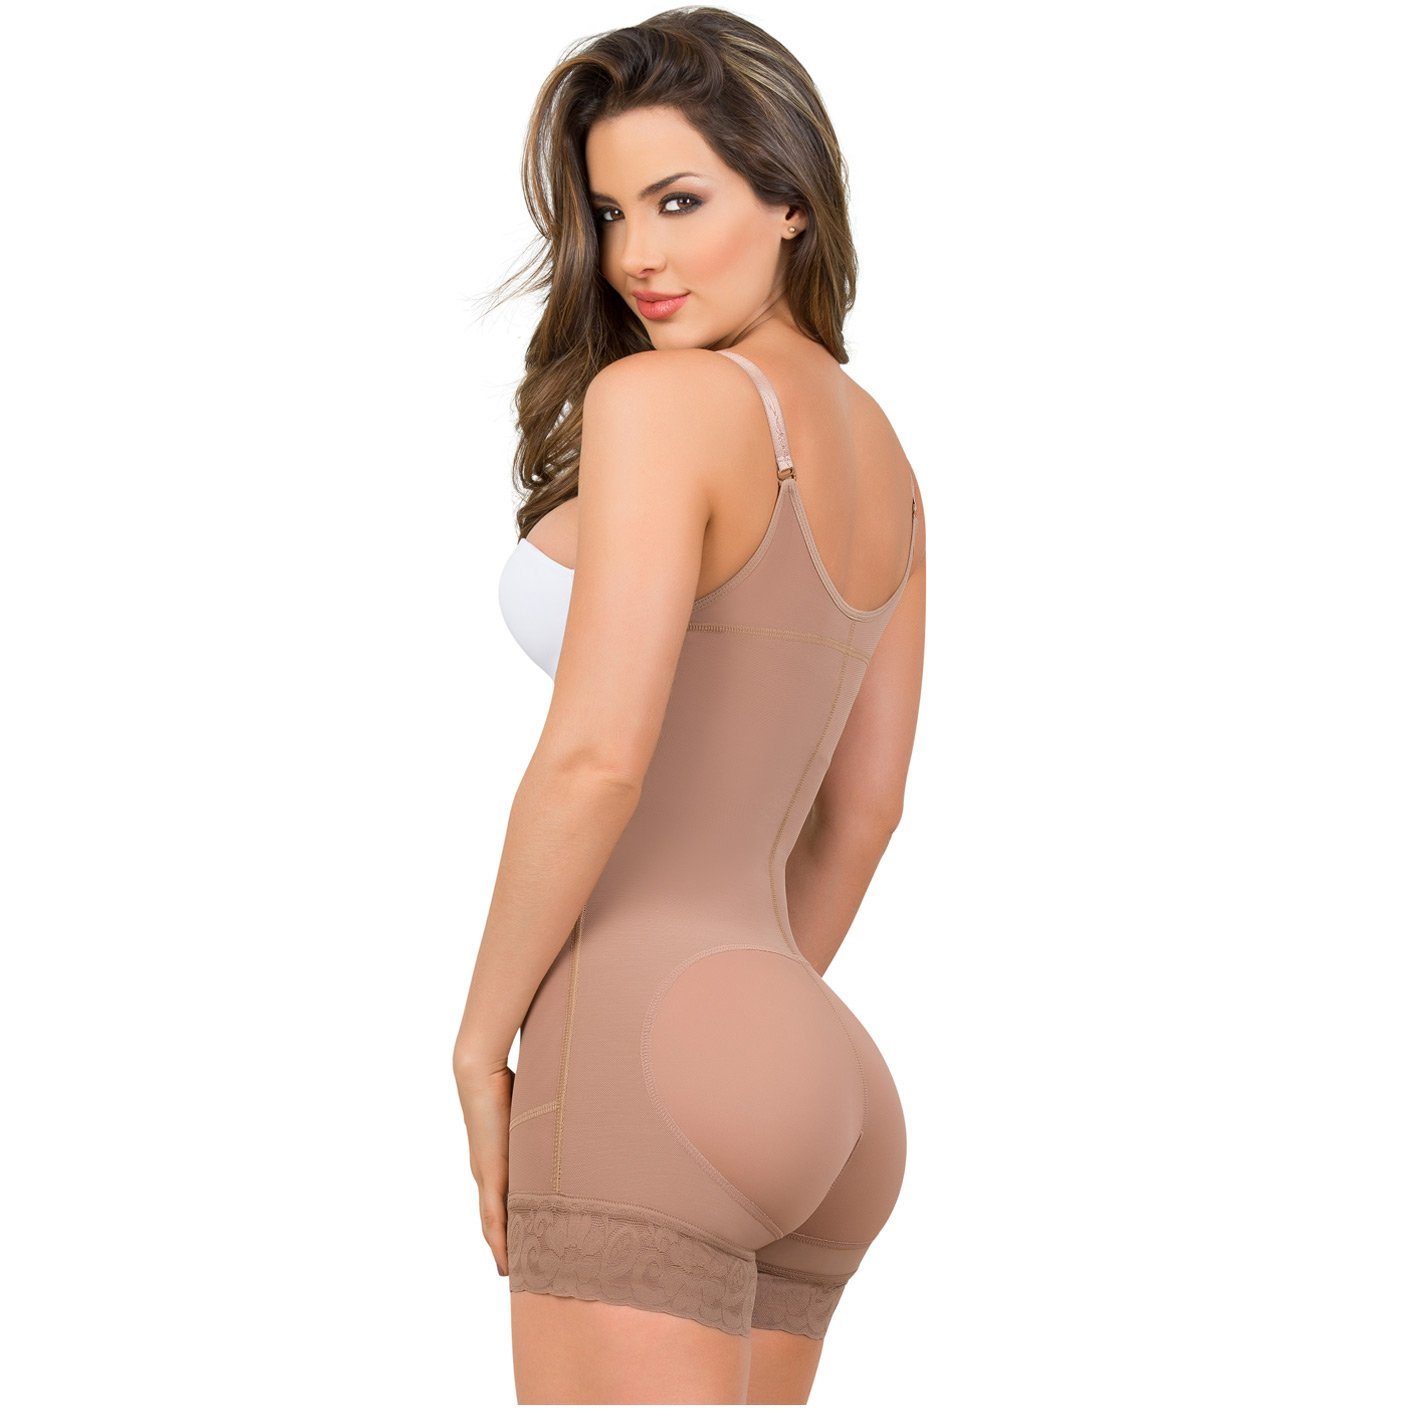 MariaE 9633 Tummy Control Butt Lifter Shaper Side Zipper - Pal Negocio